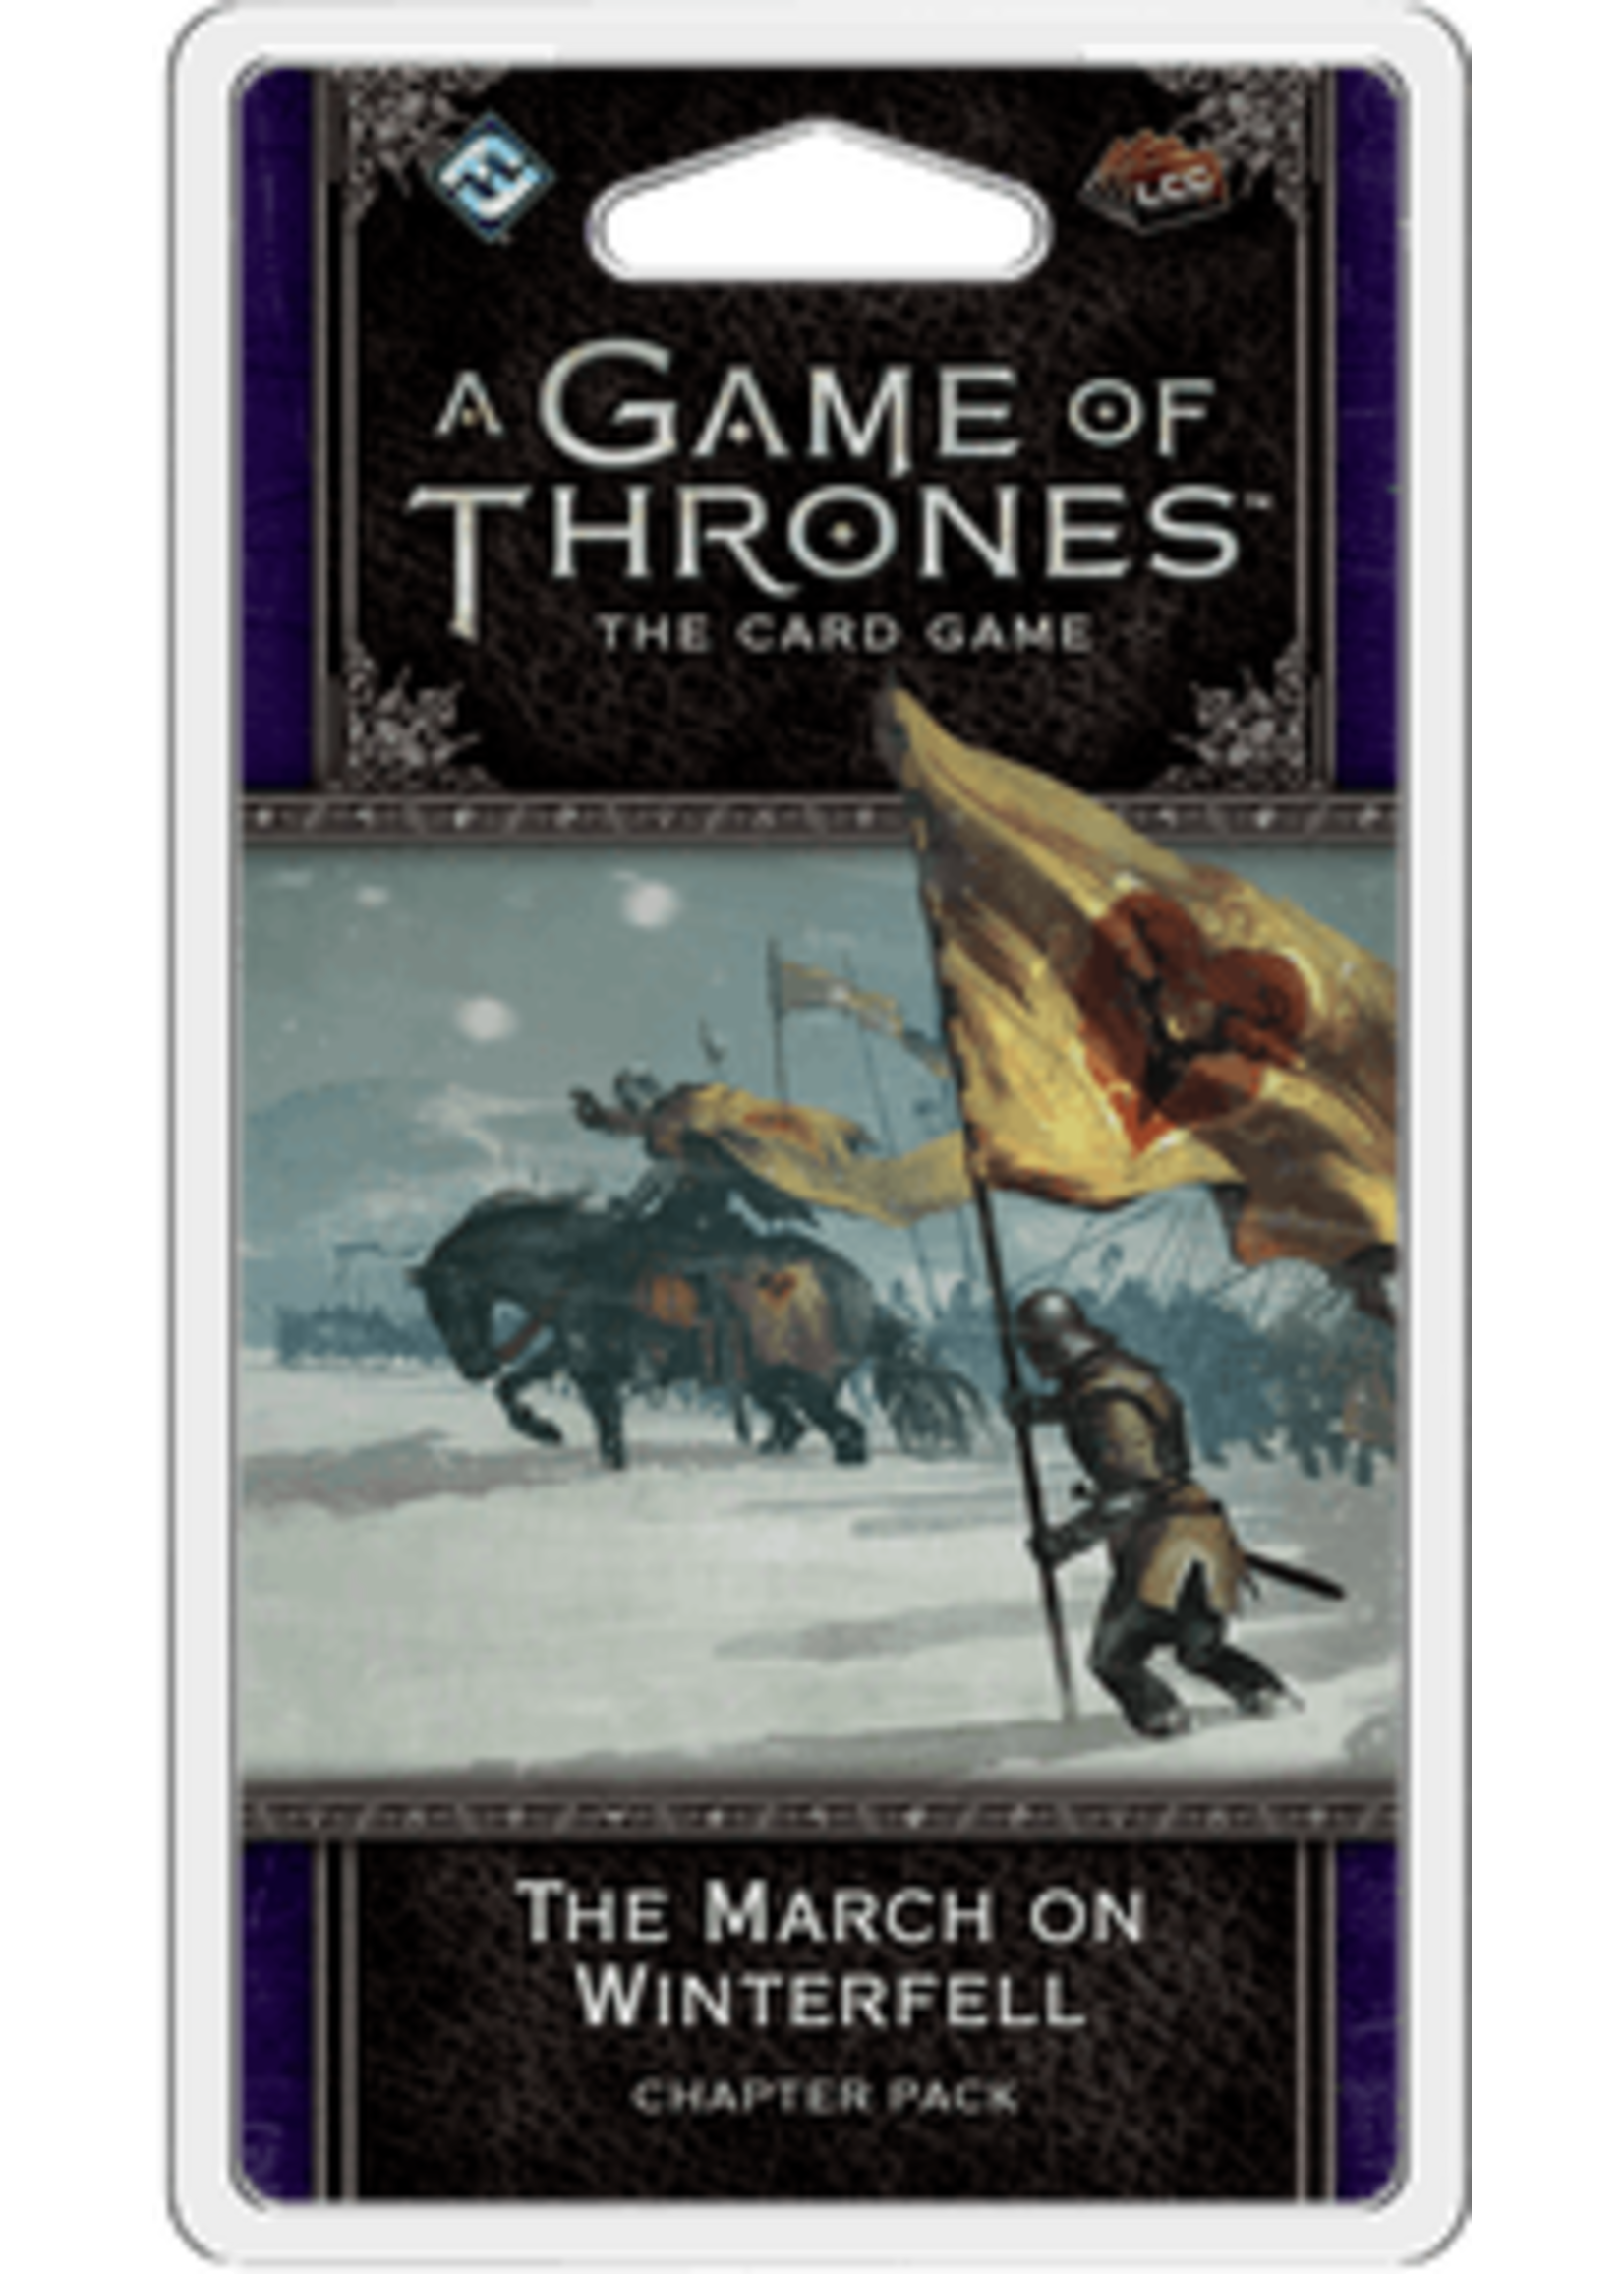 Game of Thrones LCG The March on Winterfell Chapter Pack